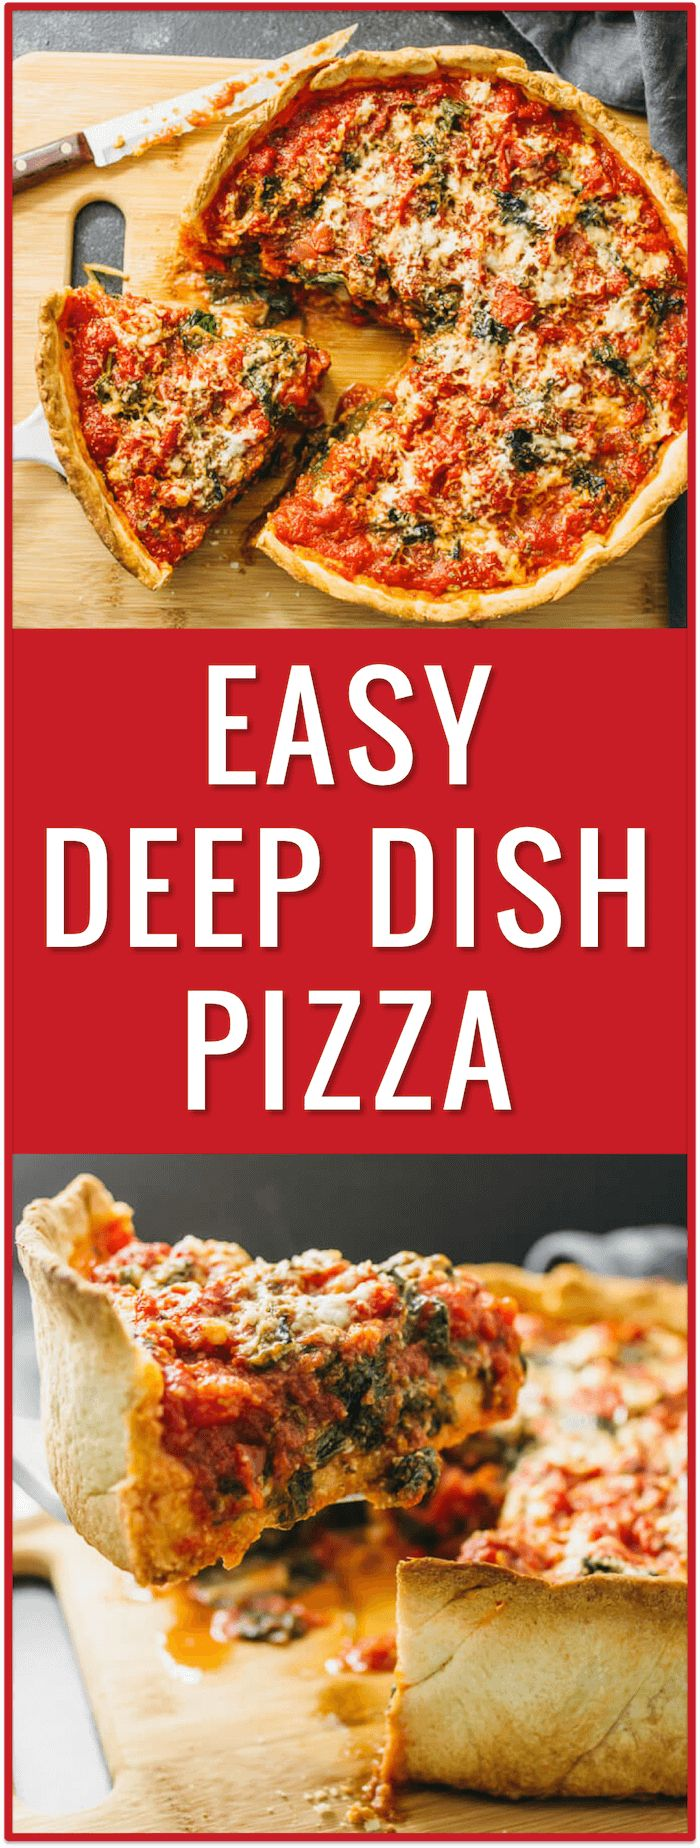 Chicago deep dish pizza with spinach - Don't live in Chicago but craving deep dish pizza? No problem! In this recipe, I'll show you how to make homemade Chicago deep dish pizza with spinach from scratch! The dough is easy to prepare and the filling can be of your own choosing. - savorytooth.com via @savory_tooth